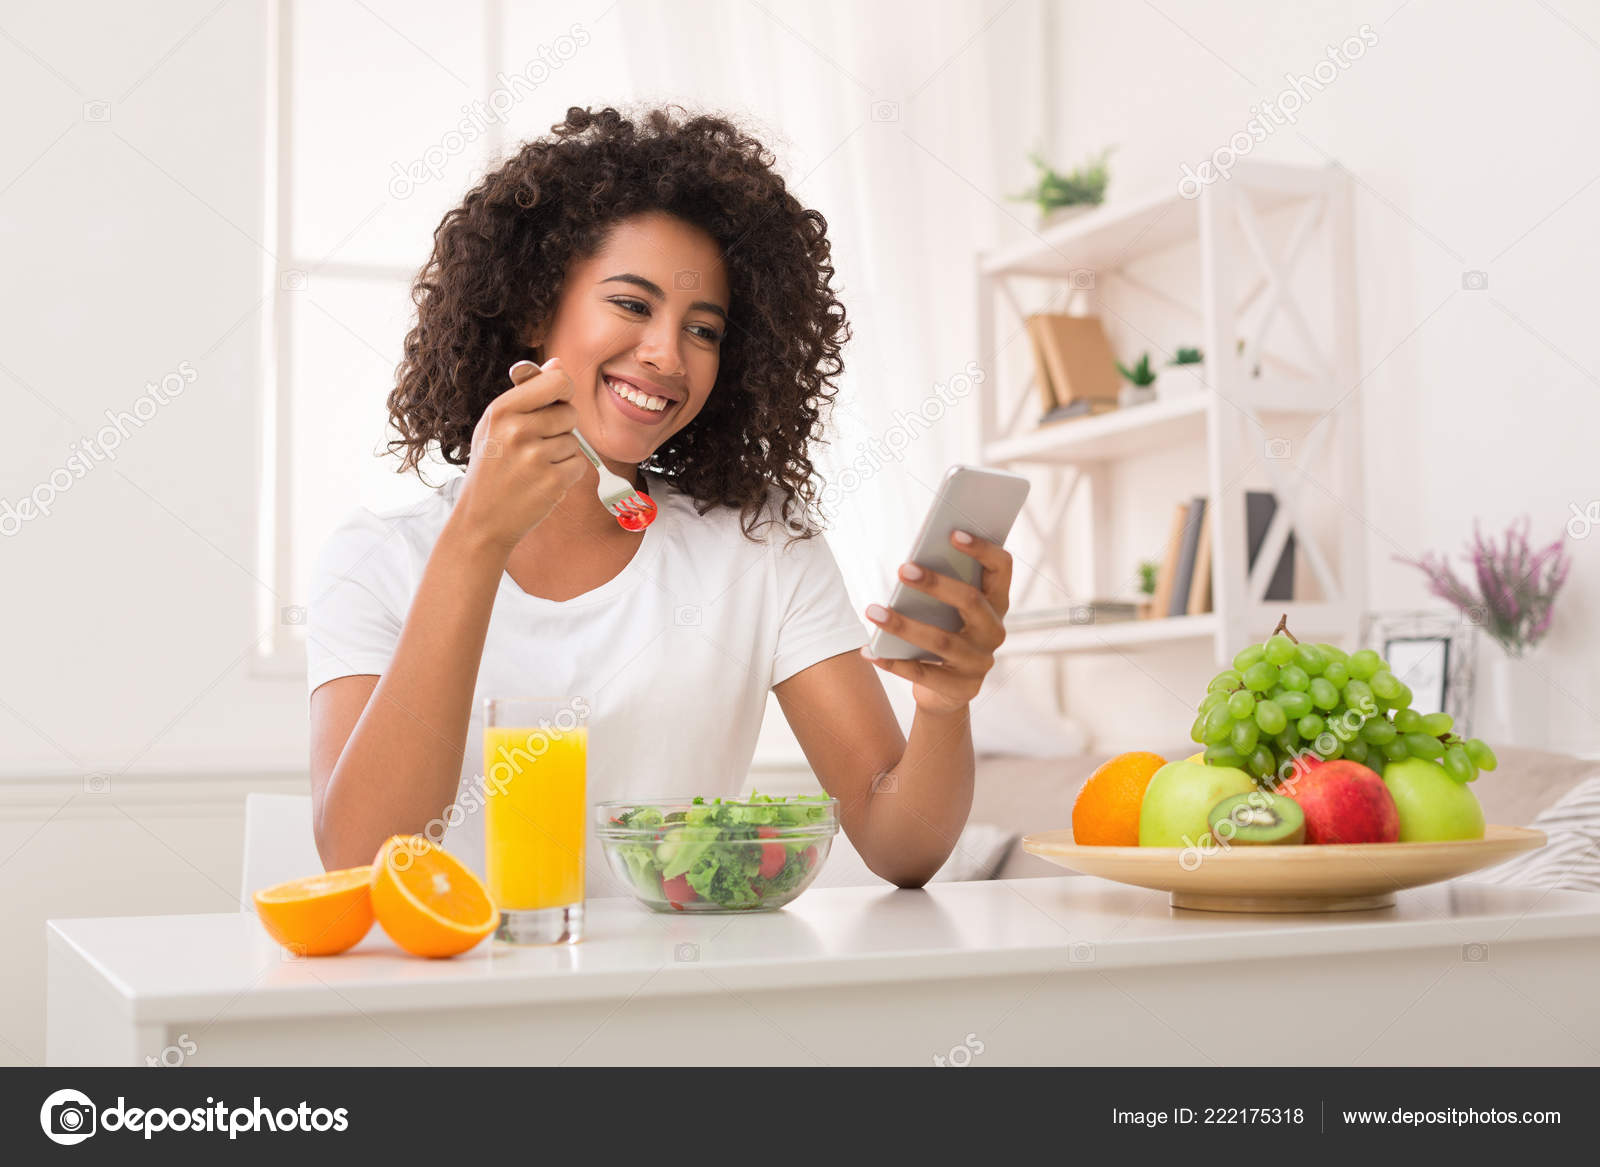 Image result for BLACK WOMAN EATING CITRUS